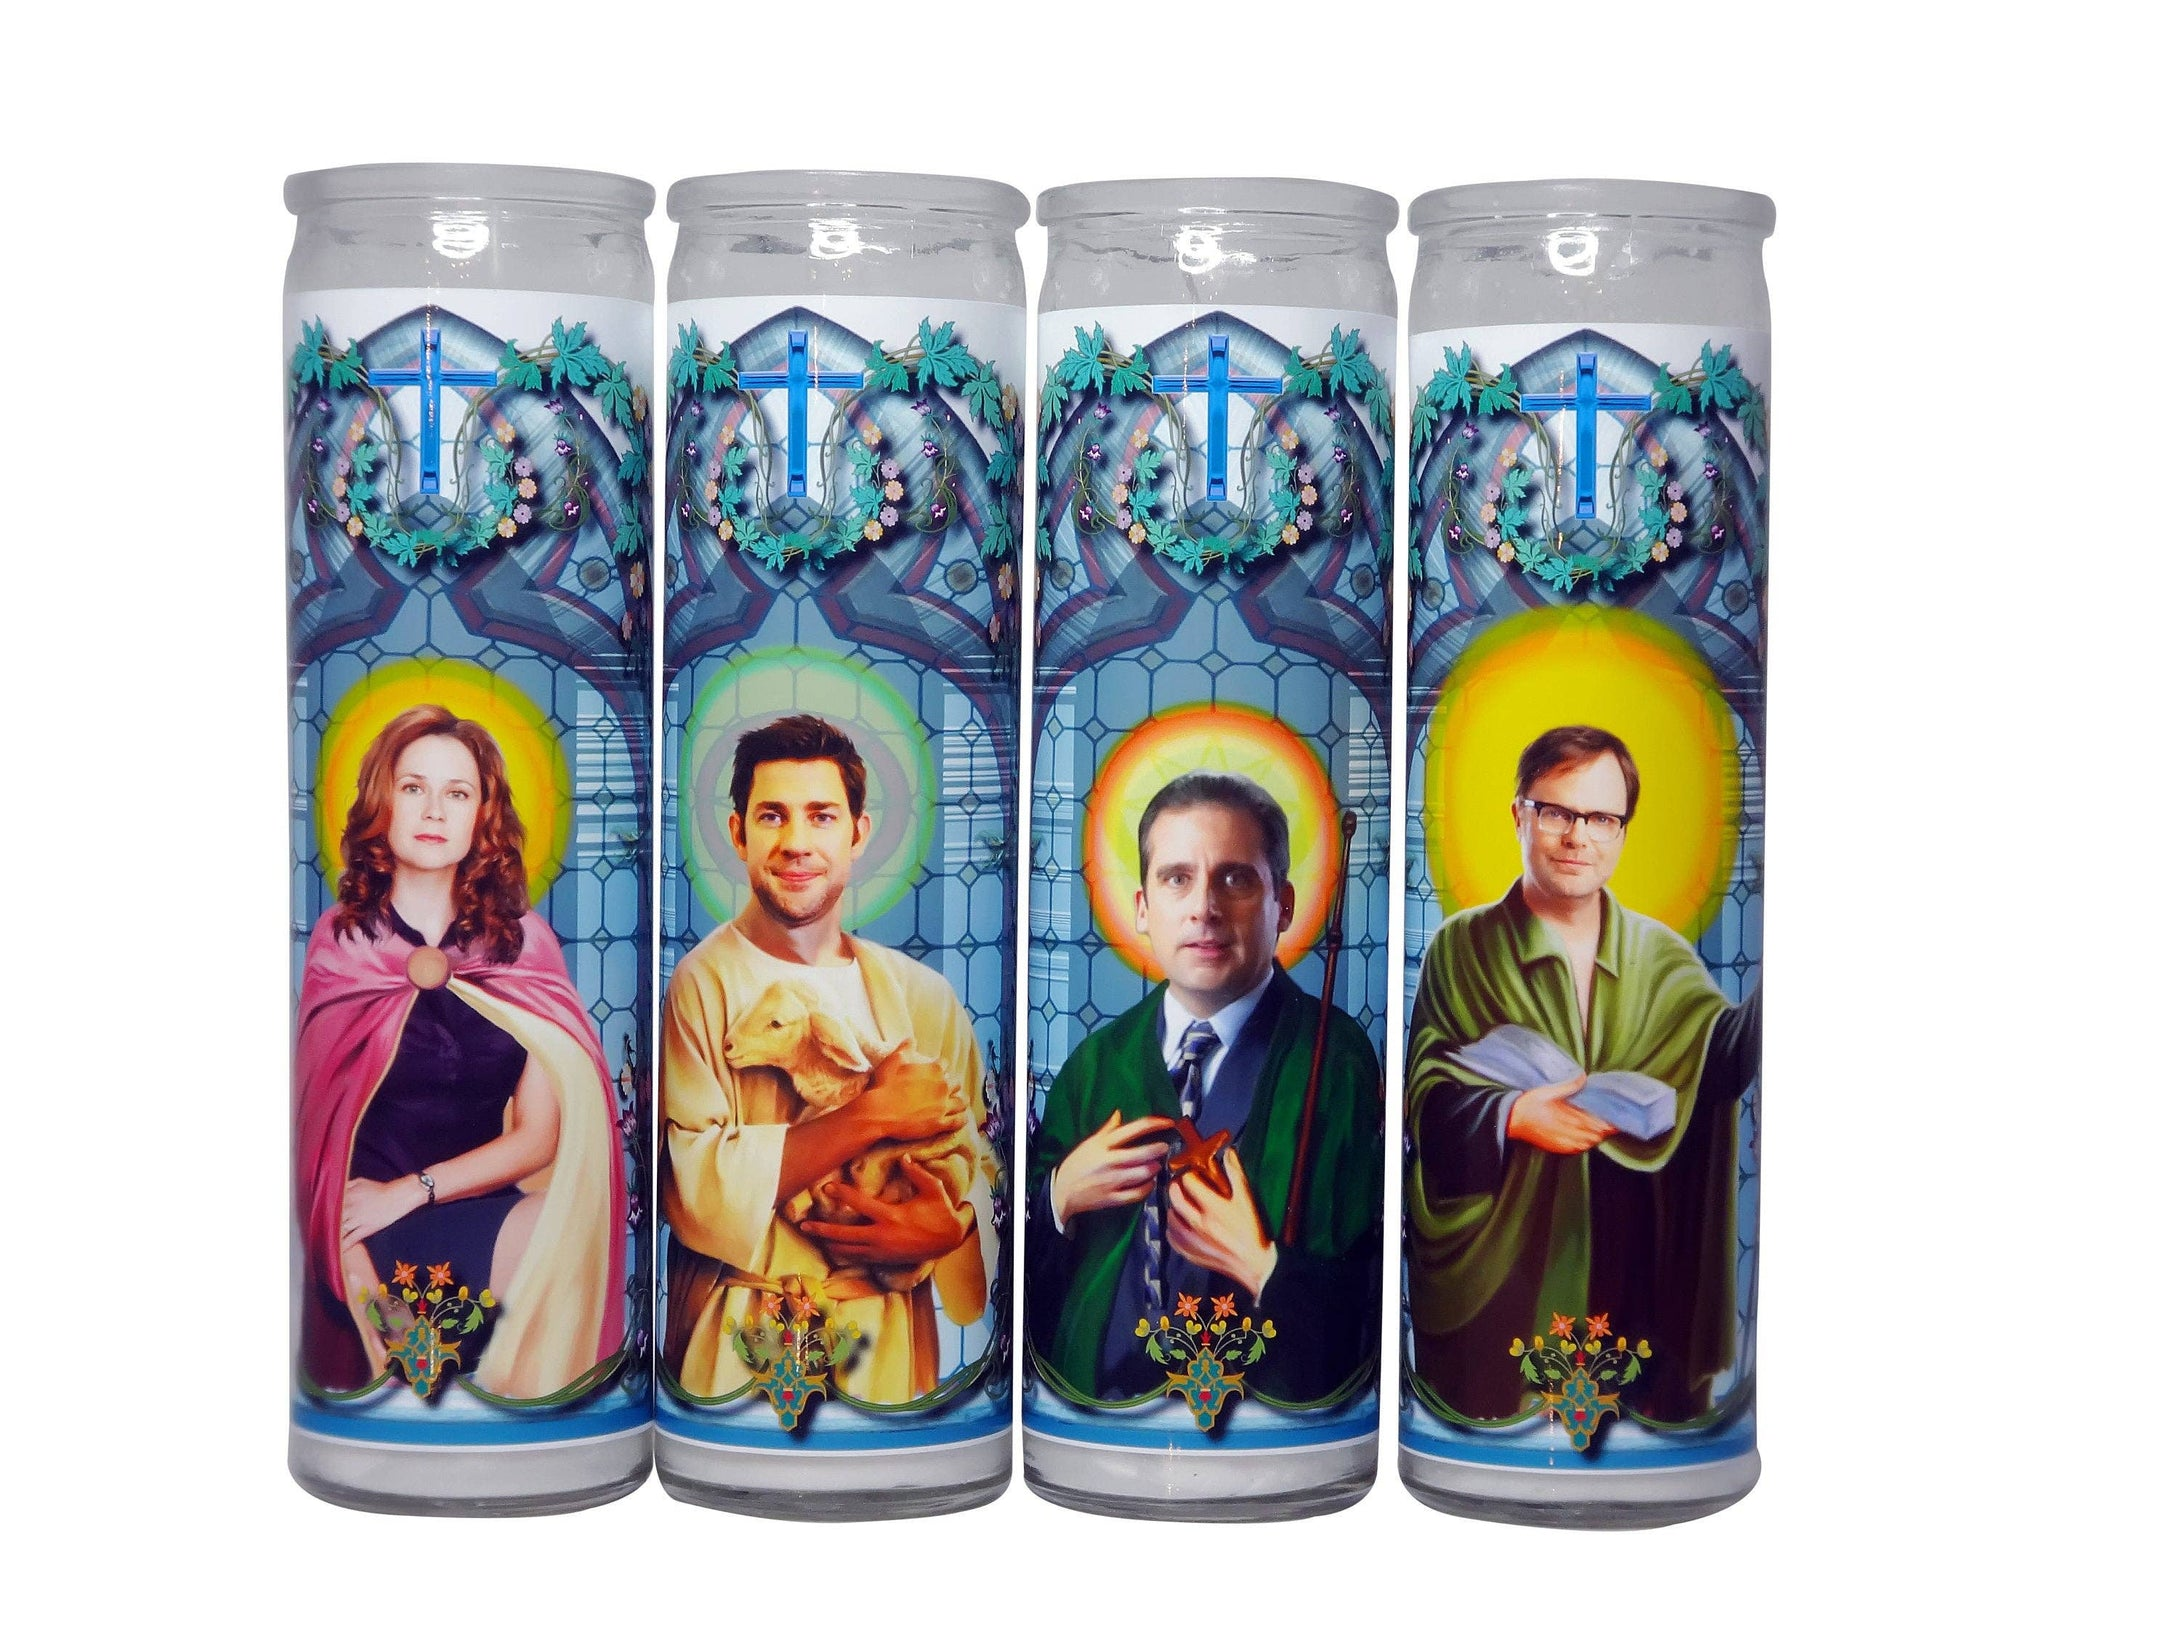 The Office Celebrity Prayer Candle Set